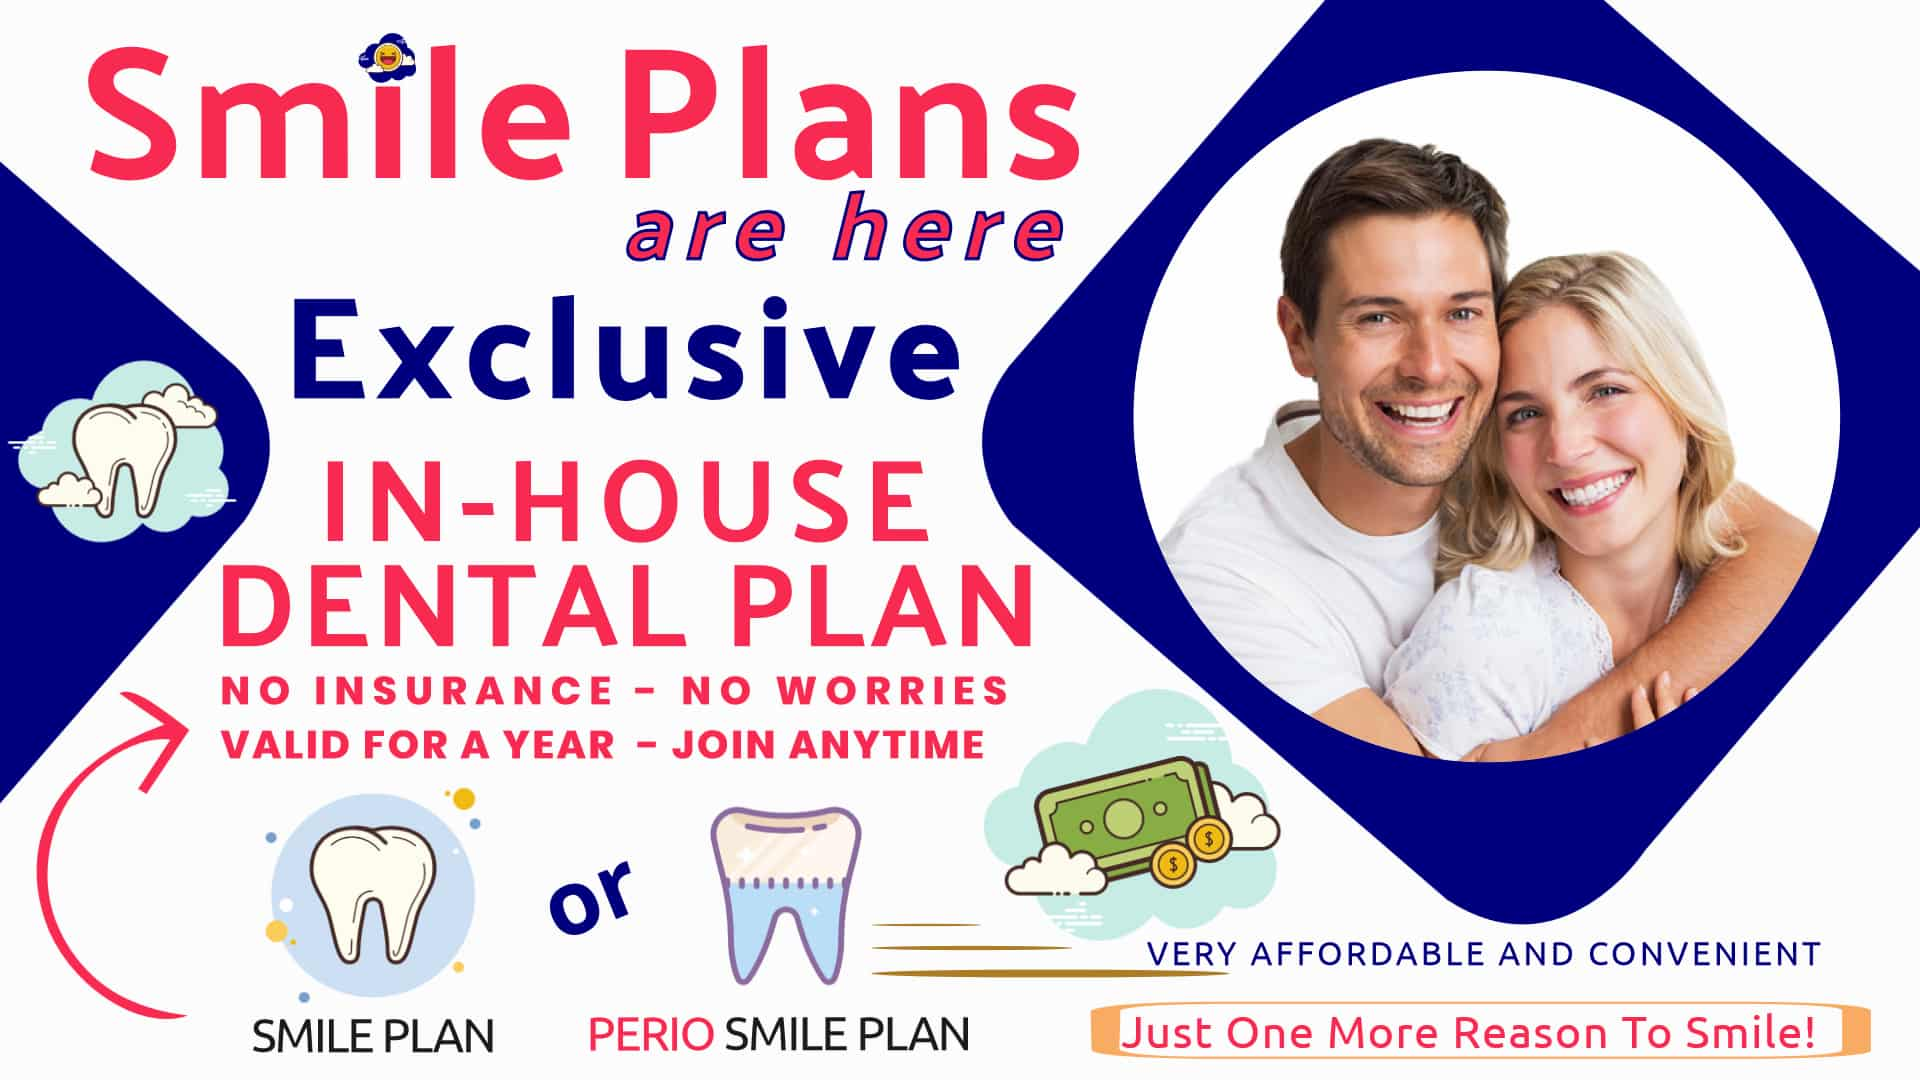 In House Dental Plans for families and individuals with no dental insurance.